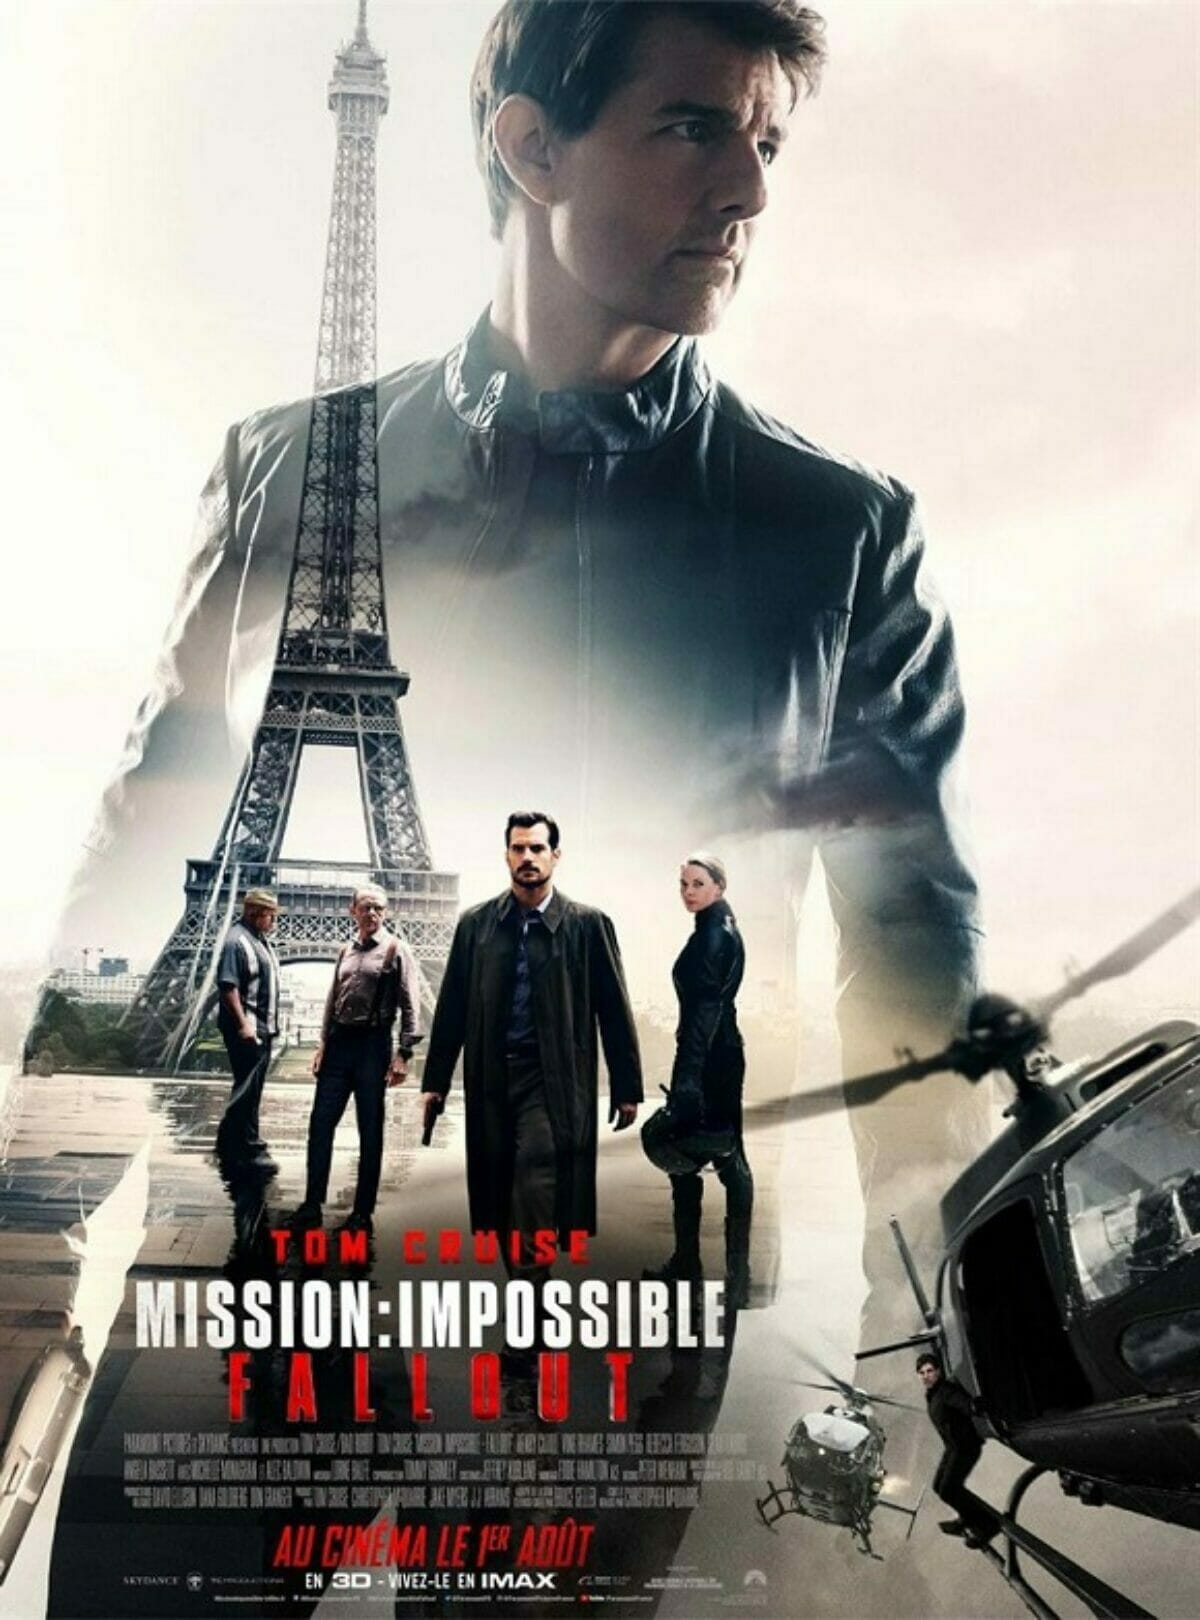 Mission-Impossible-Fallout-poster